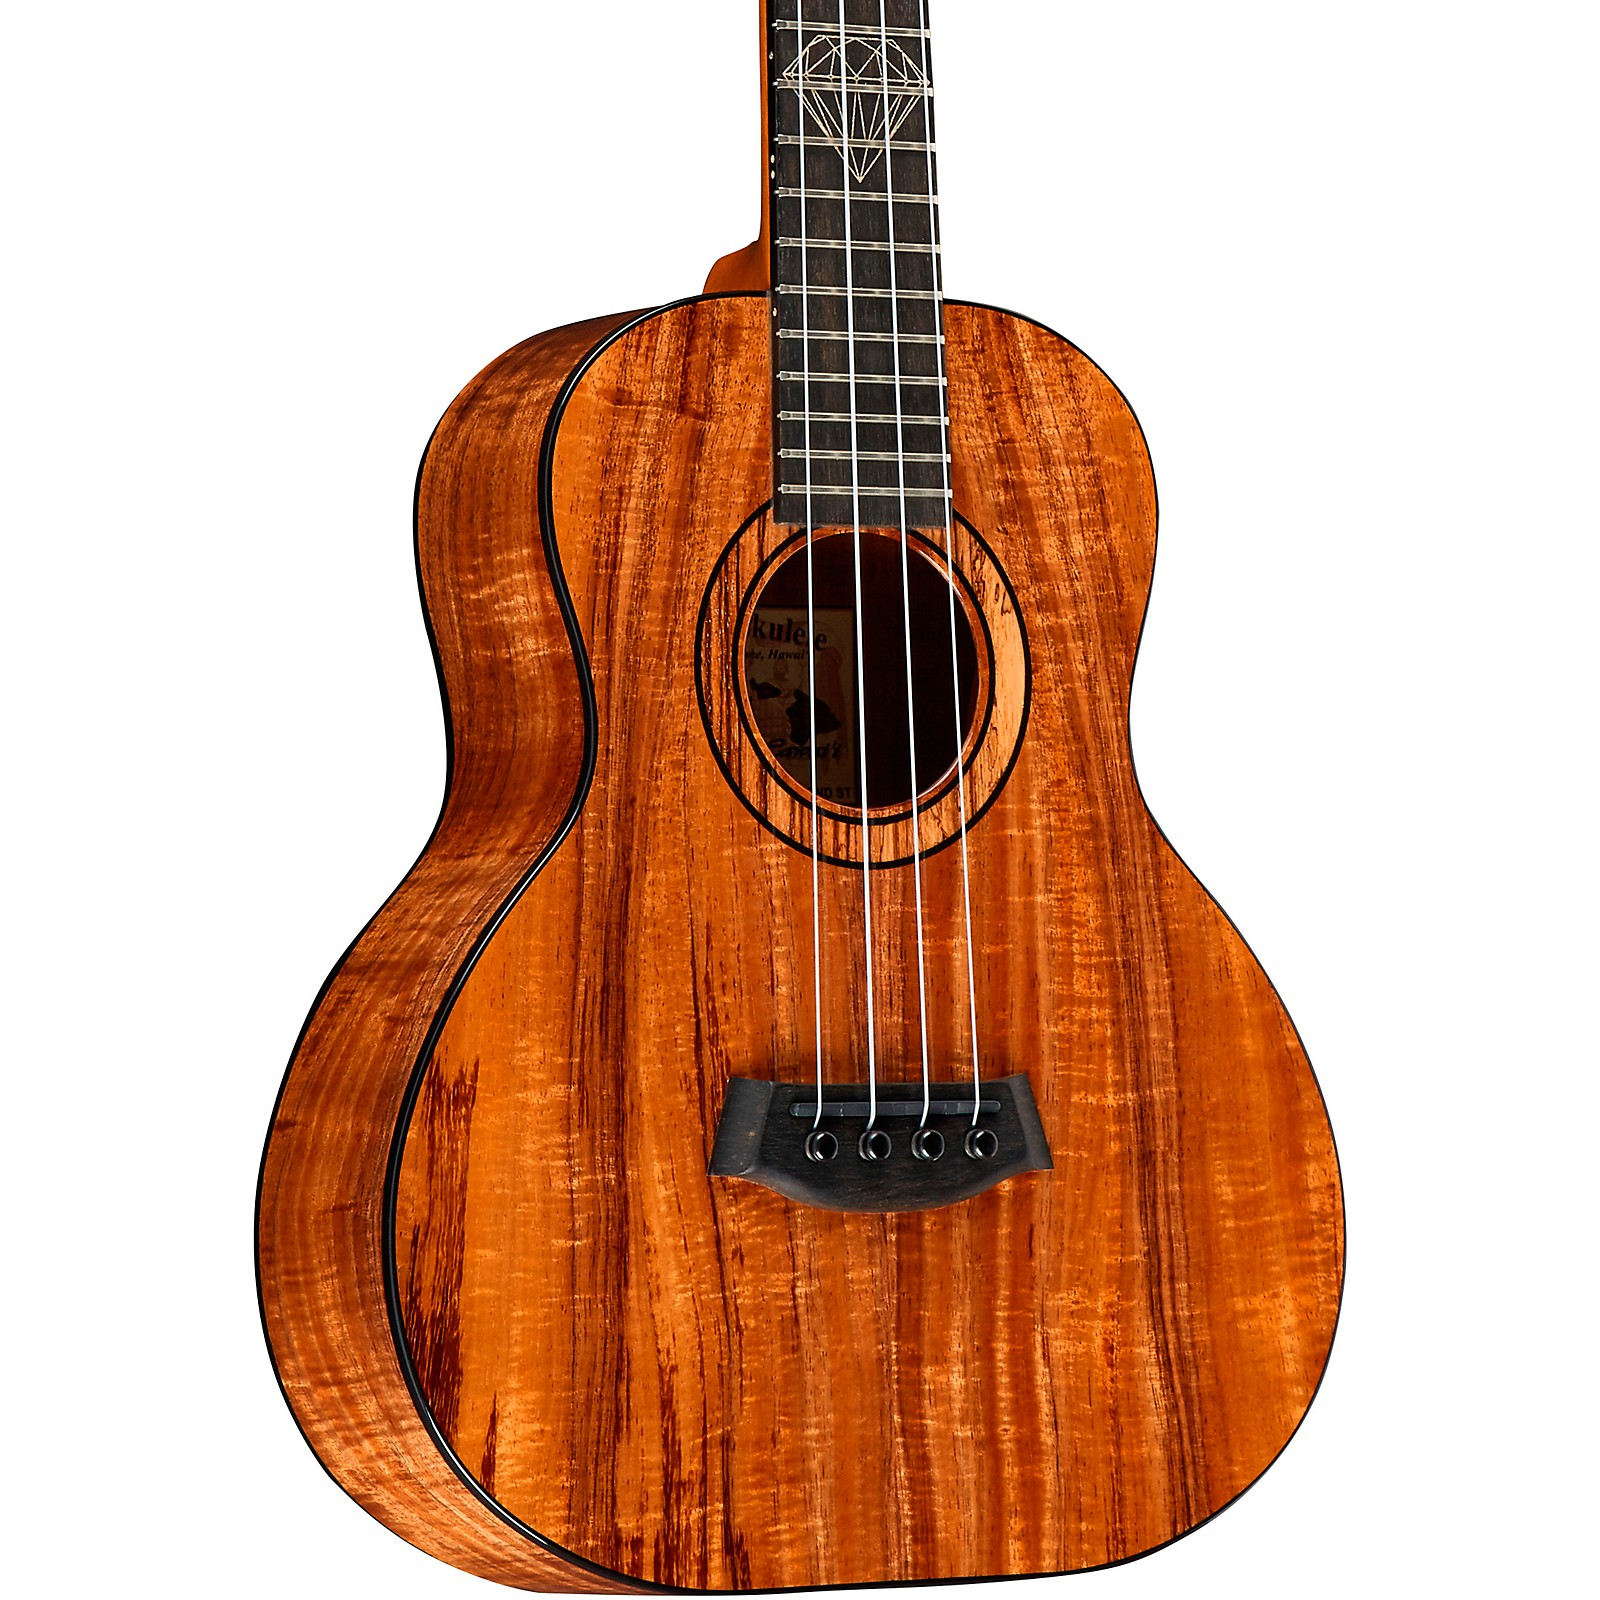 Kanile'a Ukulele Diamond Super Tenor Ukulele